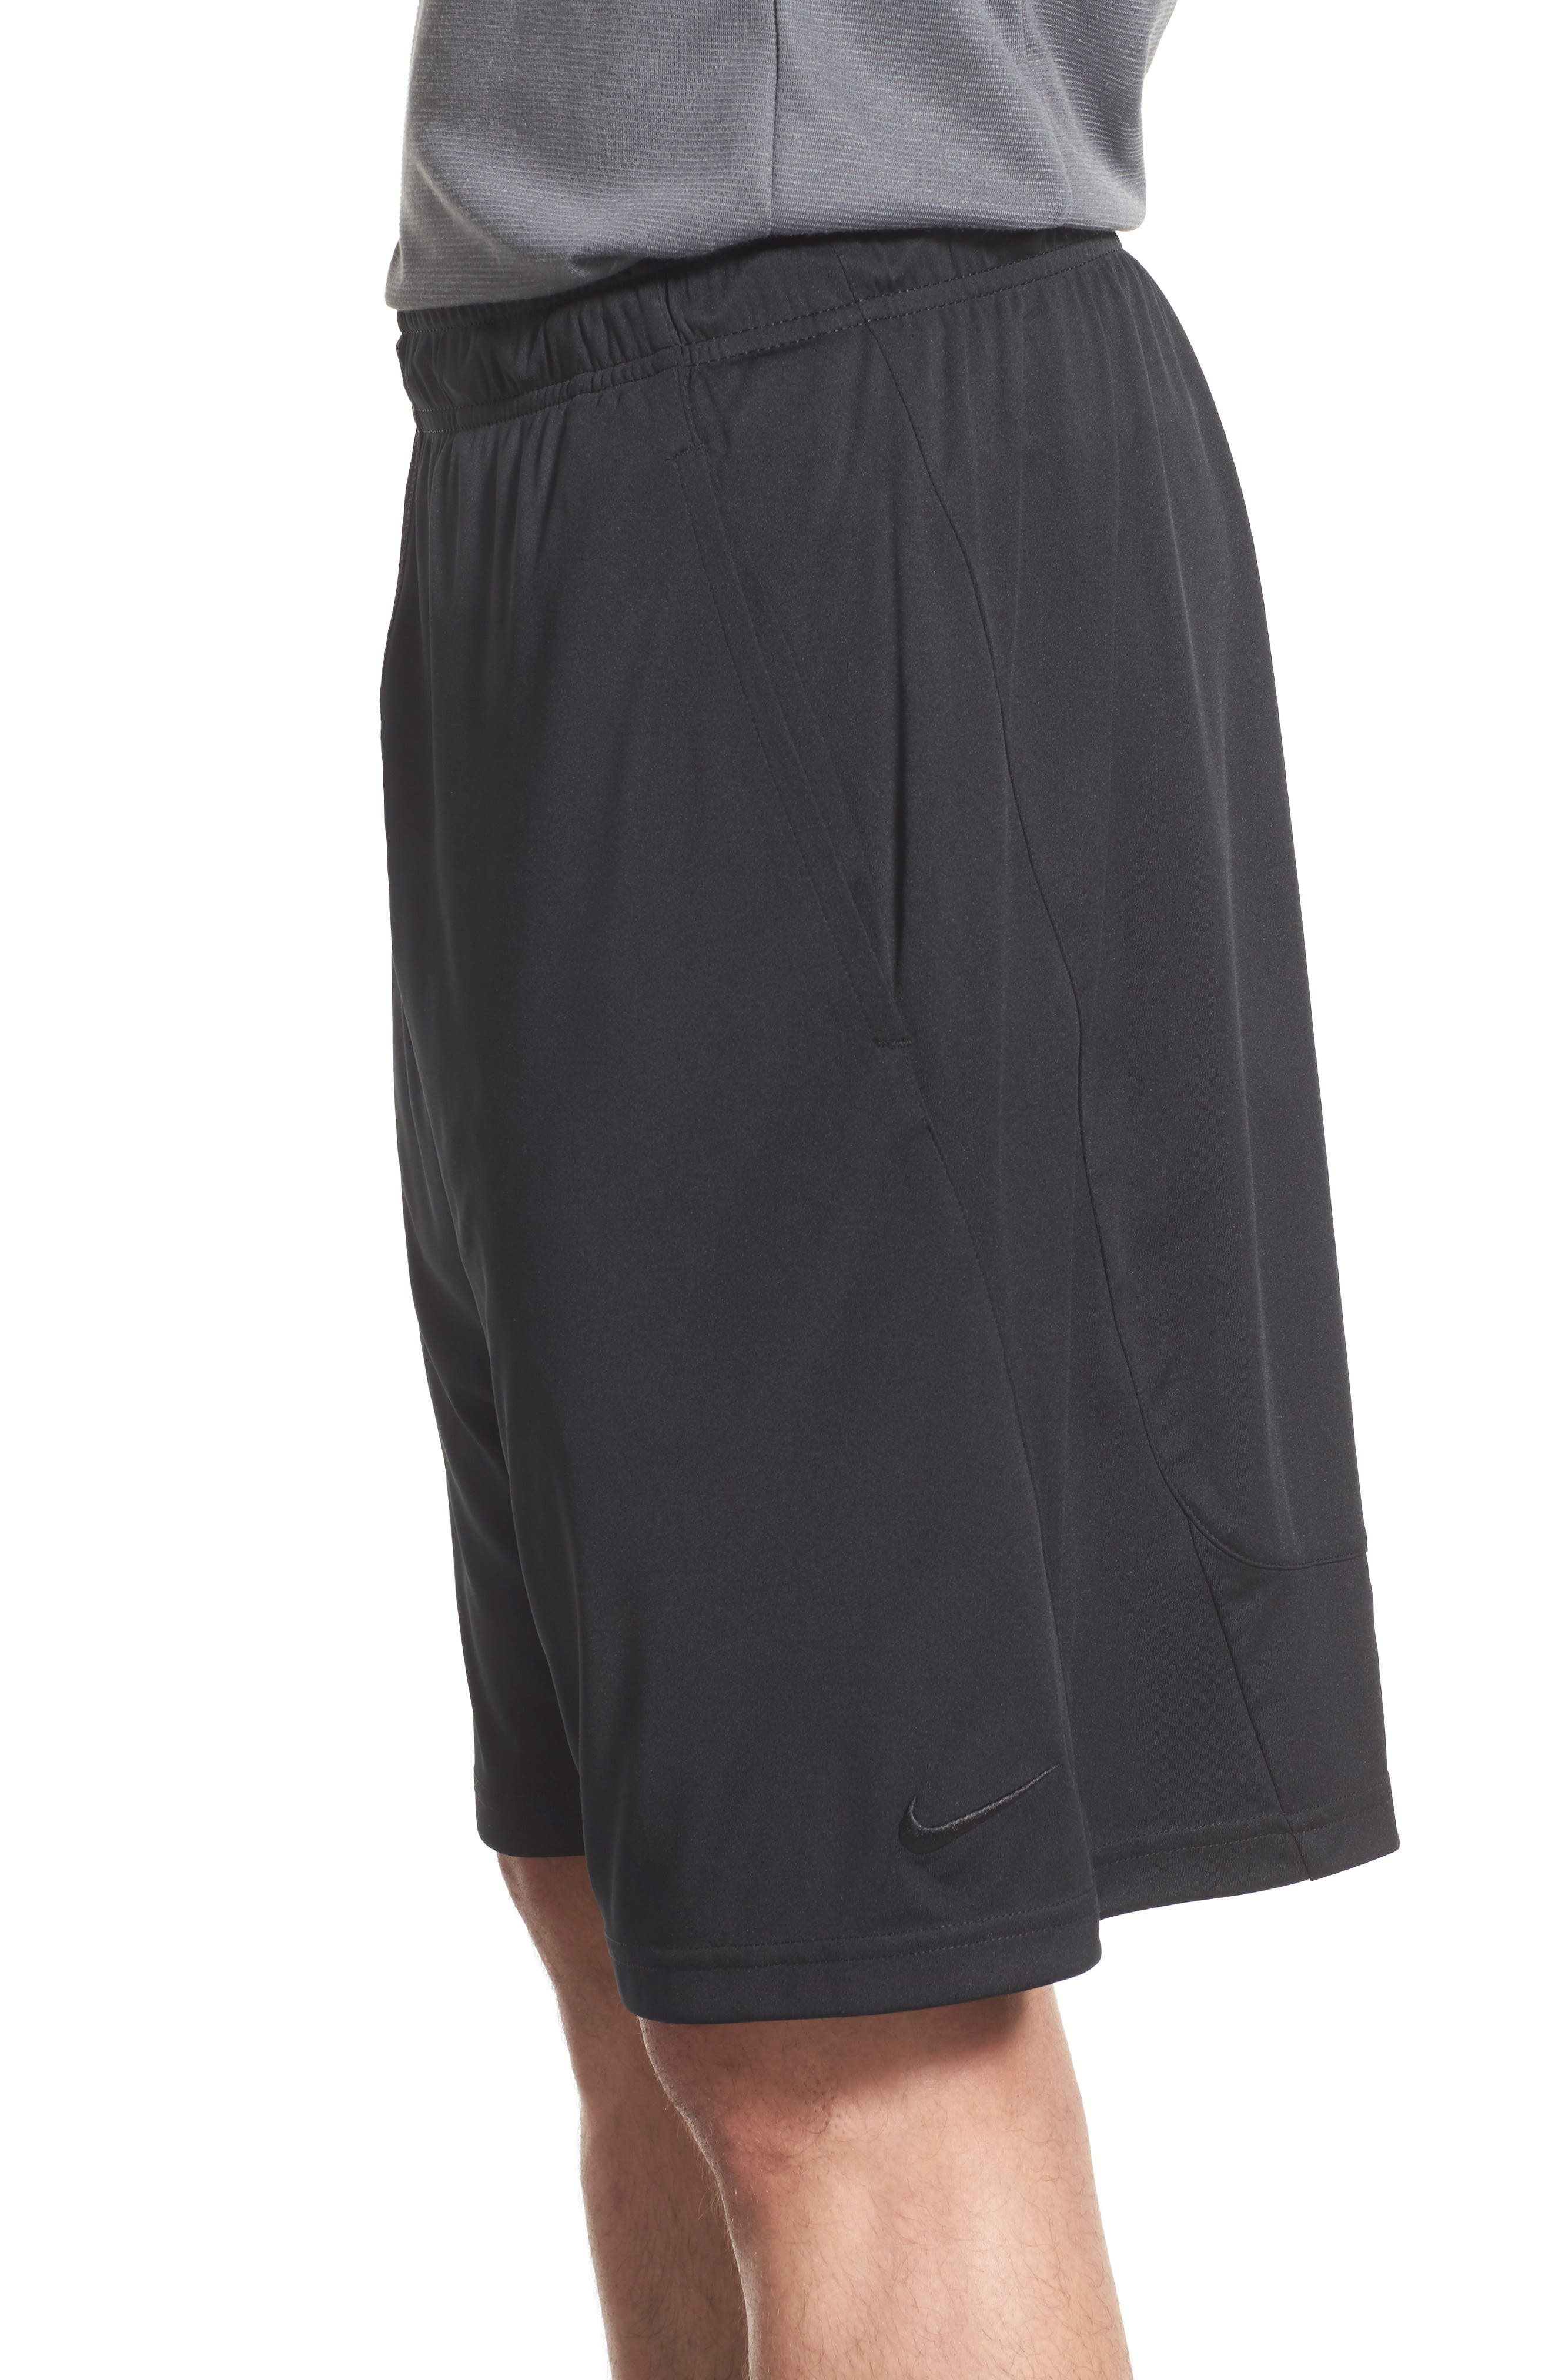 Fly Athletic Shorts,                             Alternate thumbnail 3, color,                             010